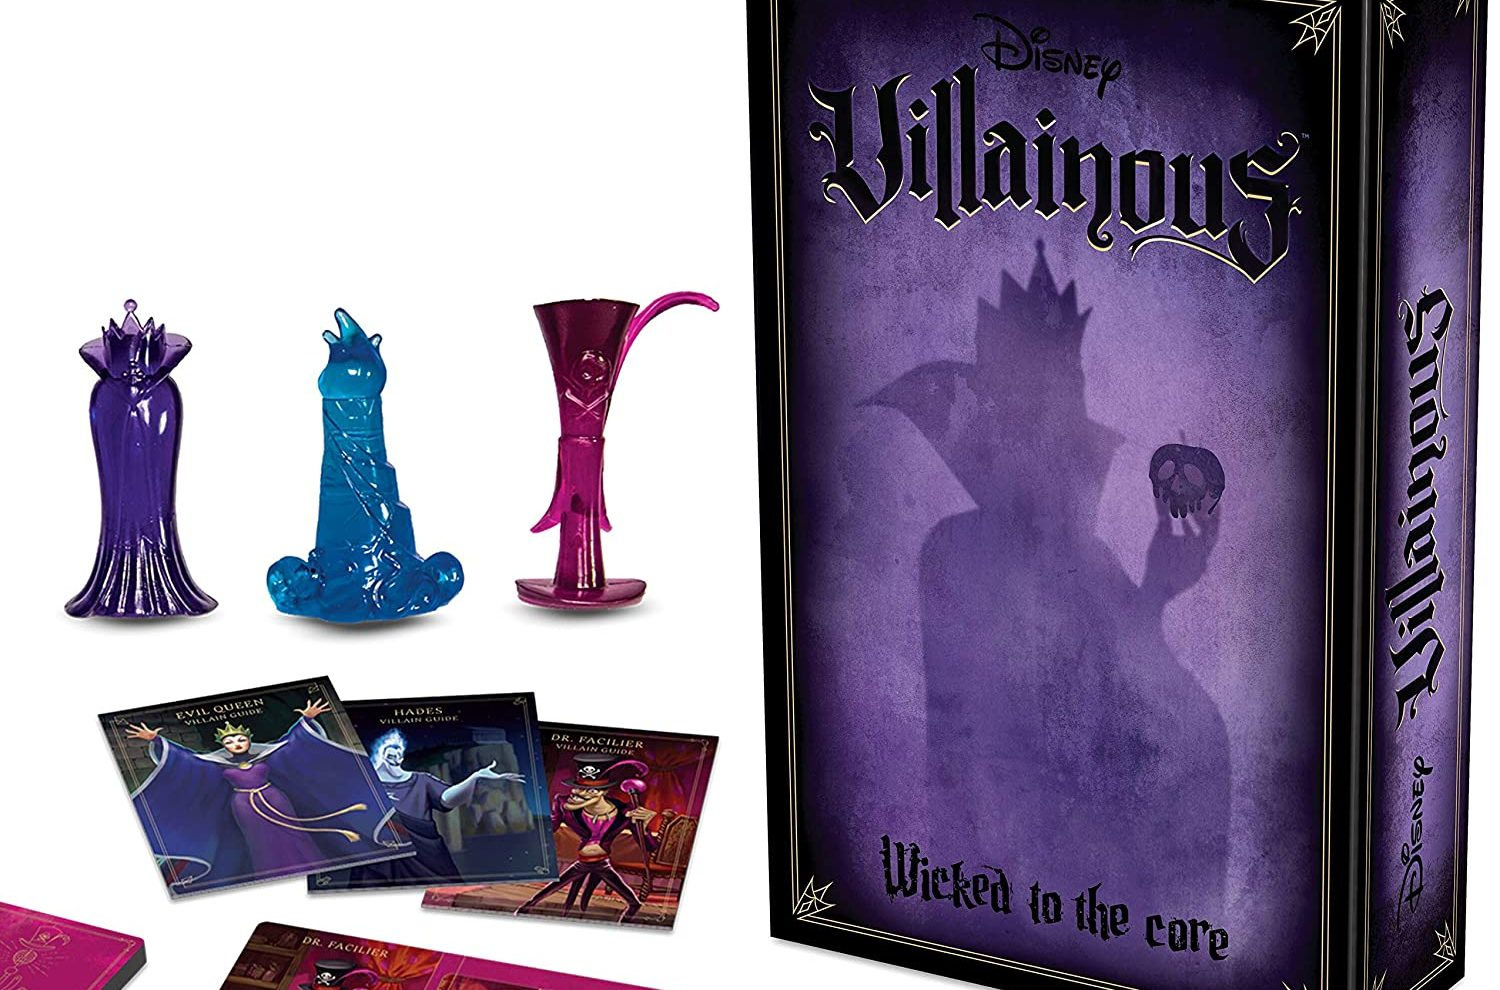 Cattivi Disney: in arrivo l'espansione di Villainous – Wicked To The Core